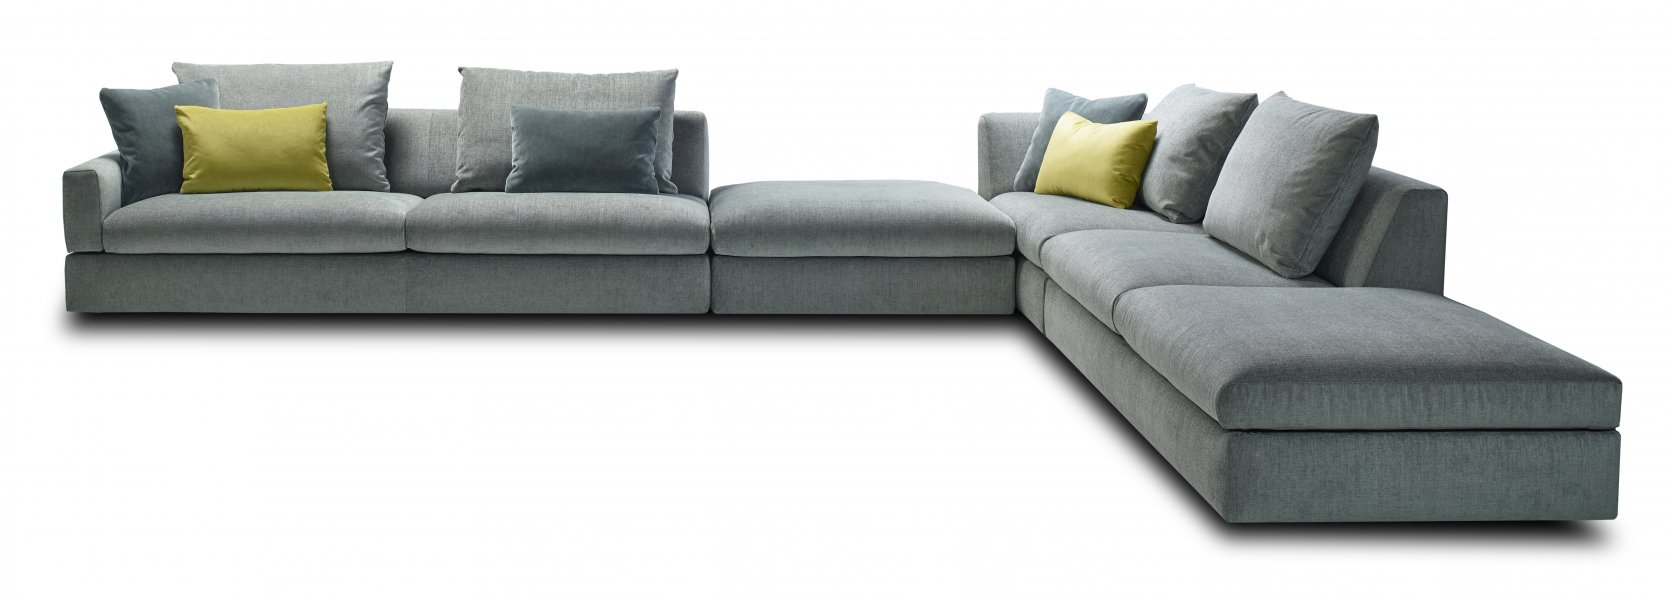 Tigra Divanbase  Sofas  Product  Fabric & leather